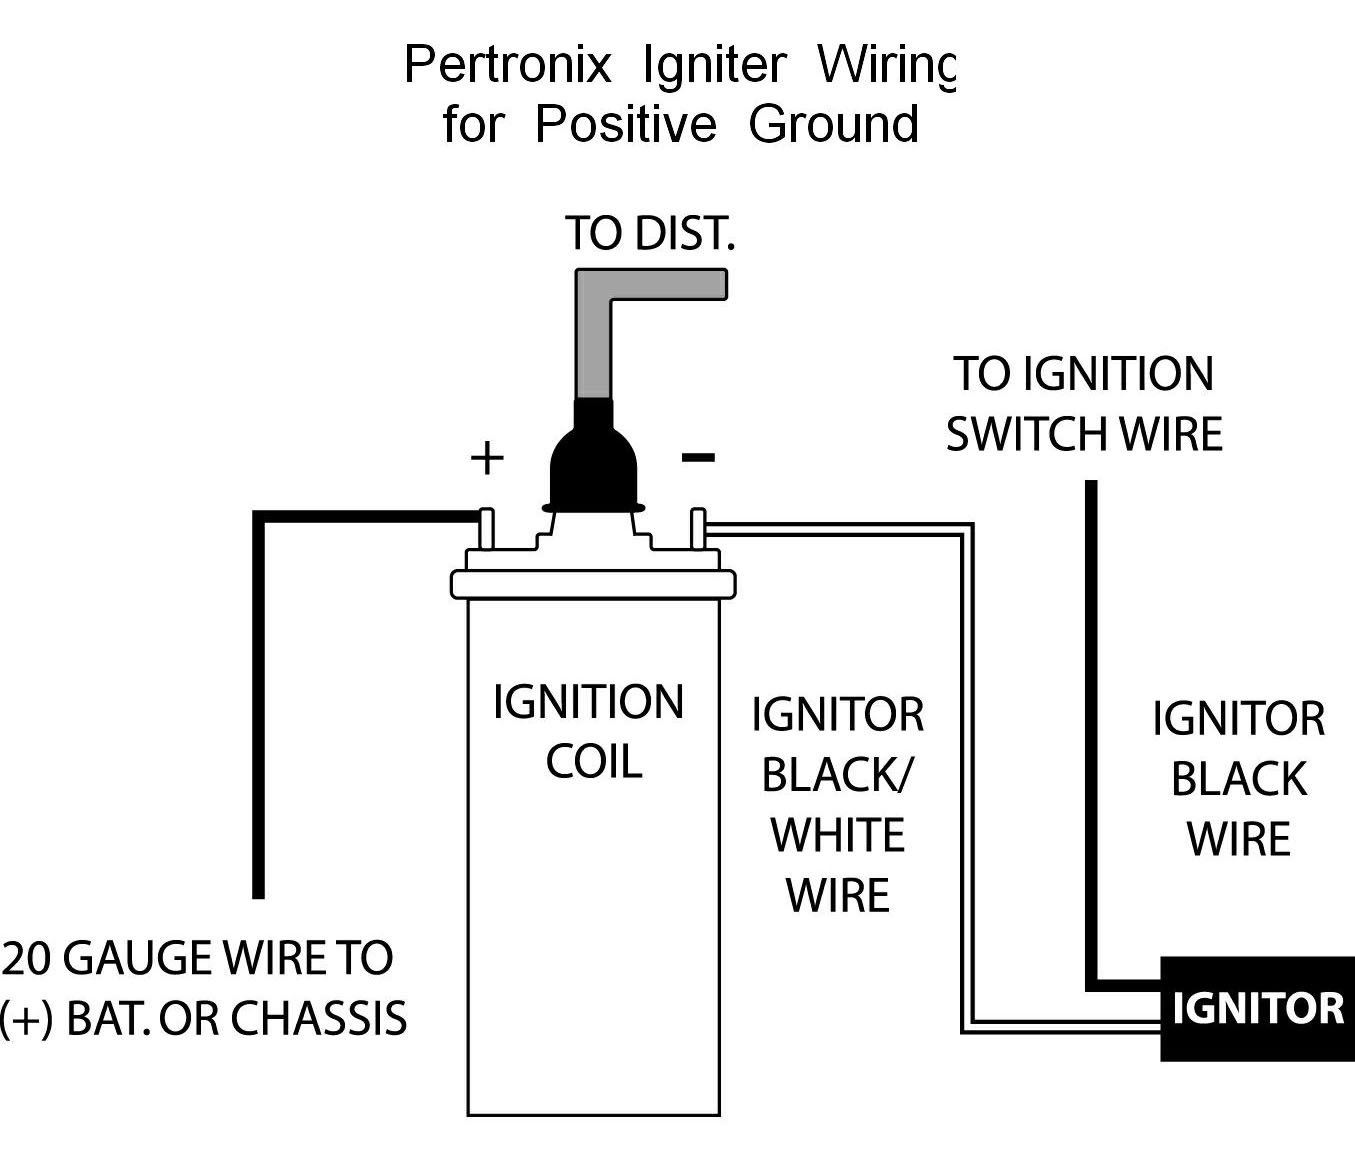 coil wiring diagram coil image wiring diagram ignition coil wiring diagram ignition wiring diagrams